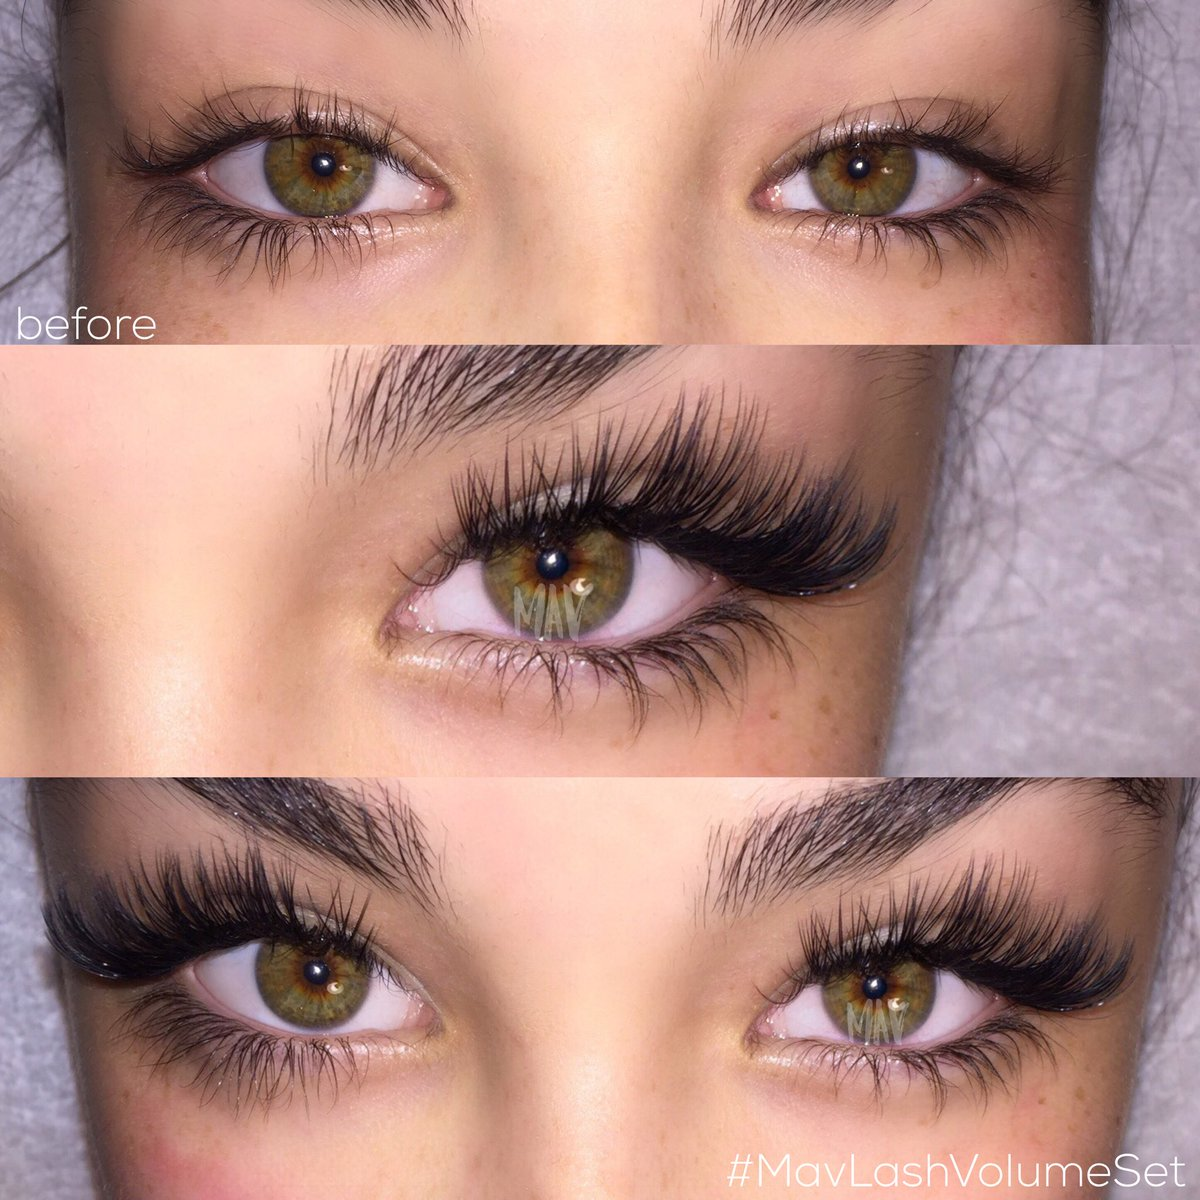 MAV LASH EXTENSIONS on Twitter Its time to upgrade your